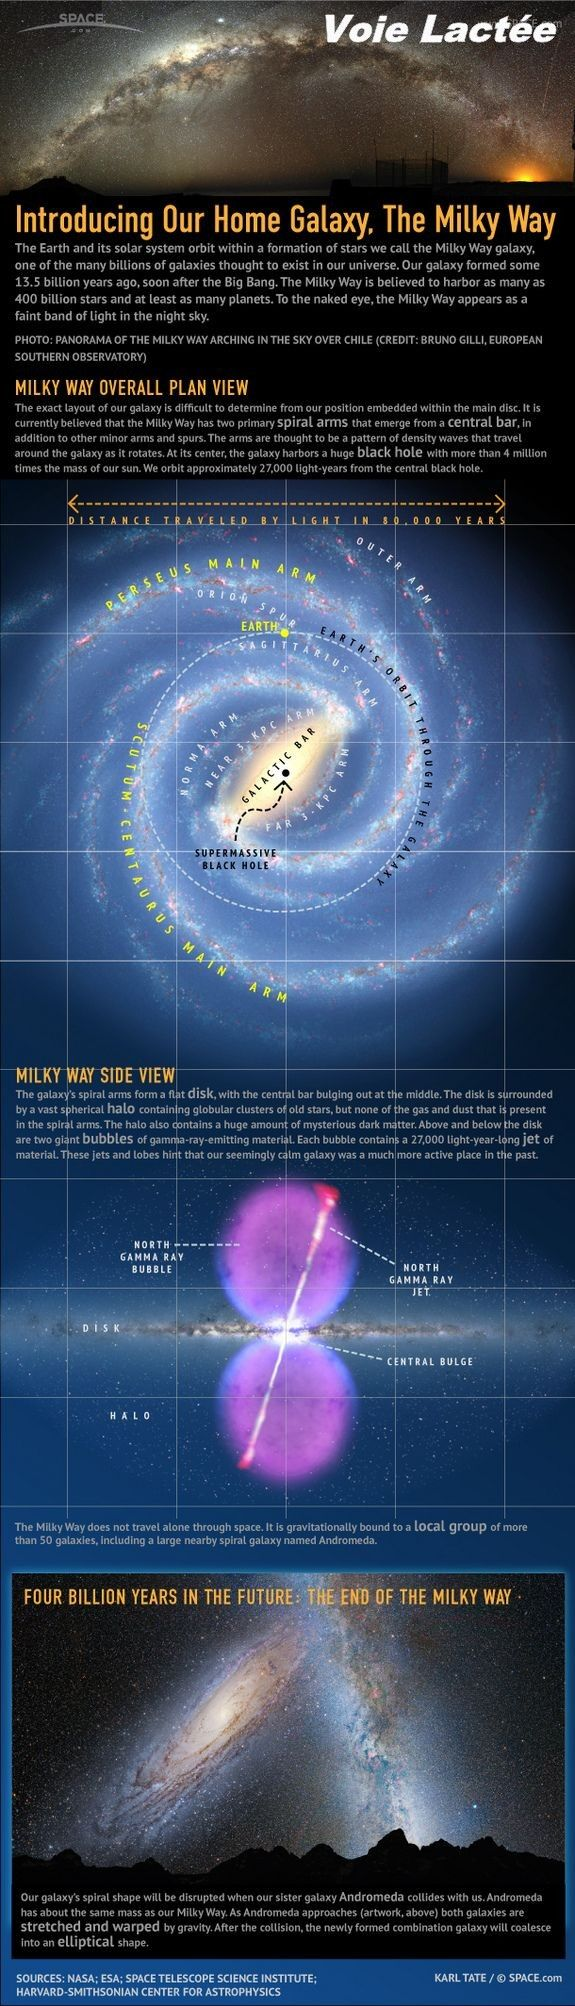 Infographic- Get to know the Milky Way!